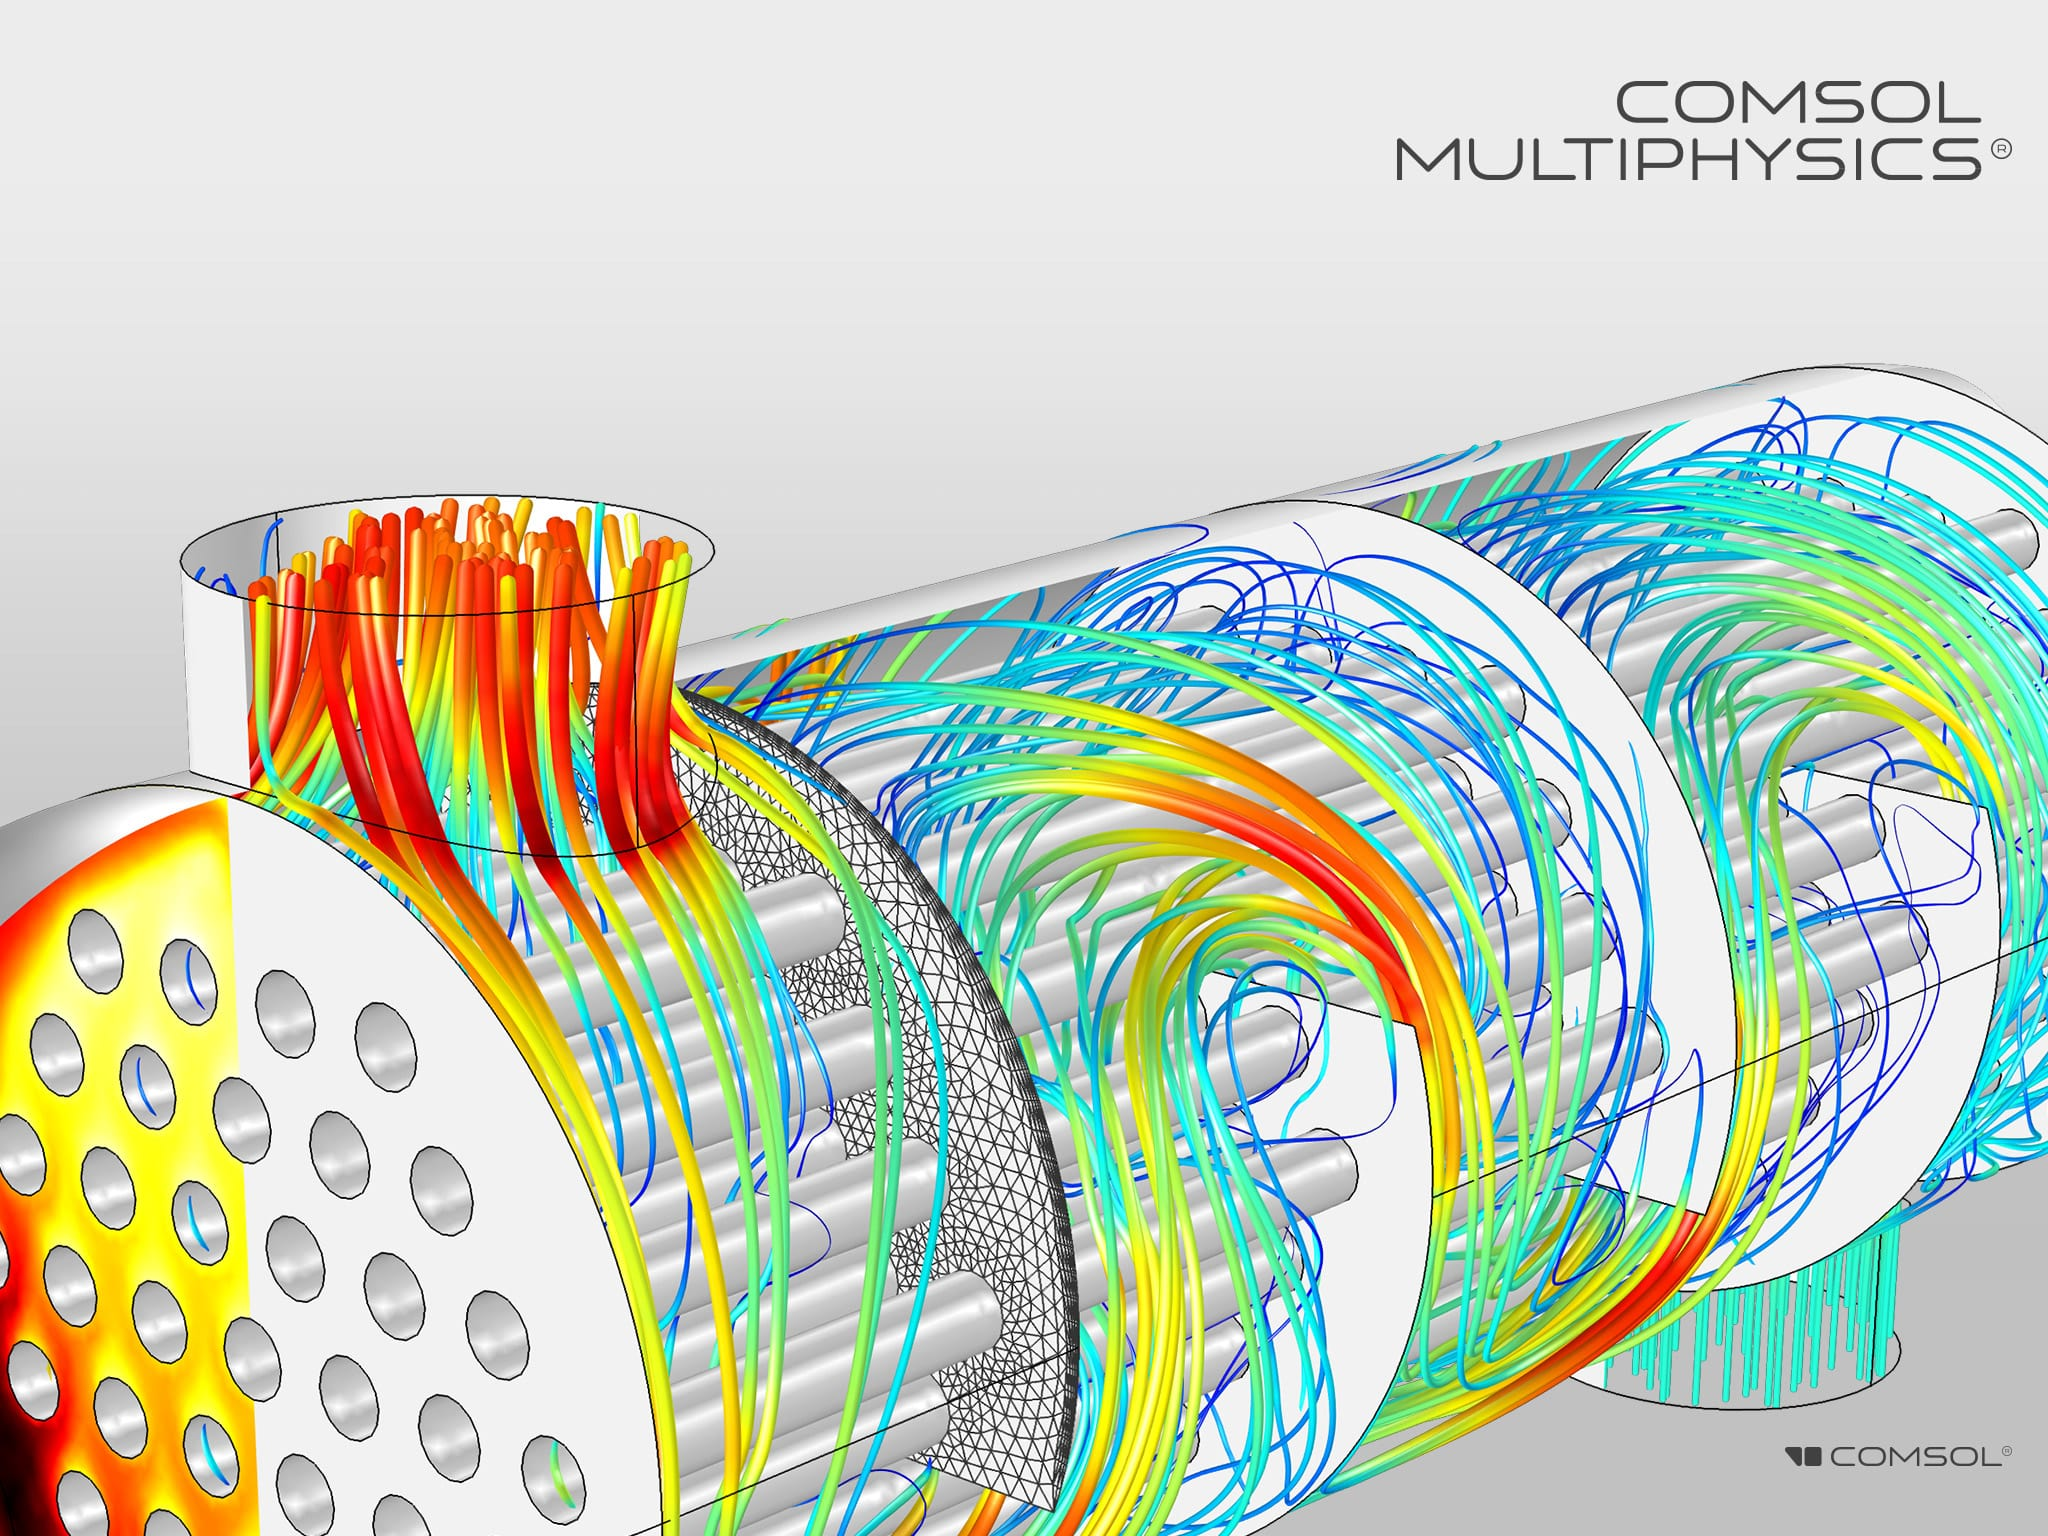 Modeling in ANSYS and Comsol multiphysics - Кафедра